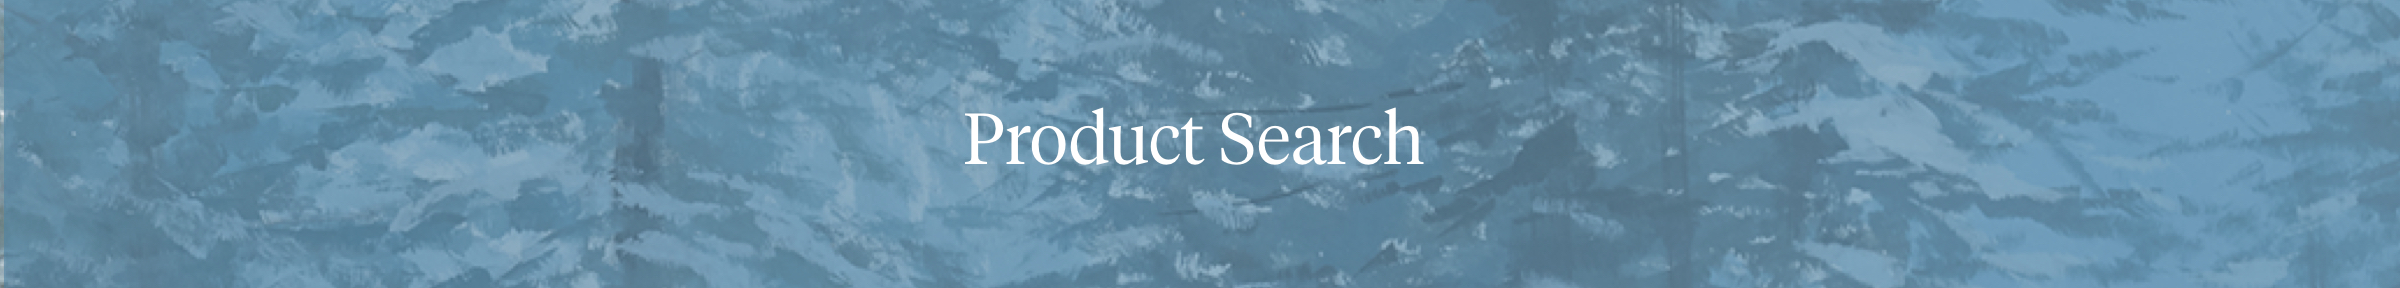 Product Search Results